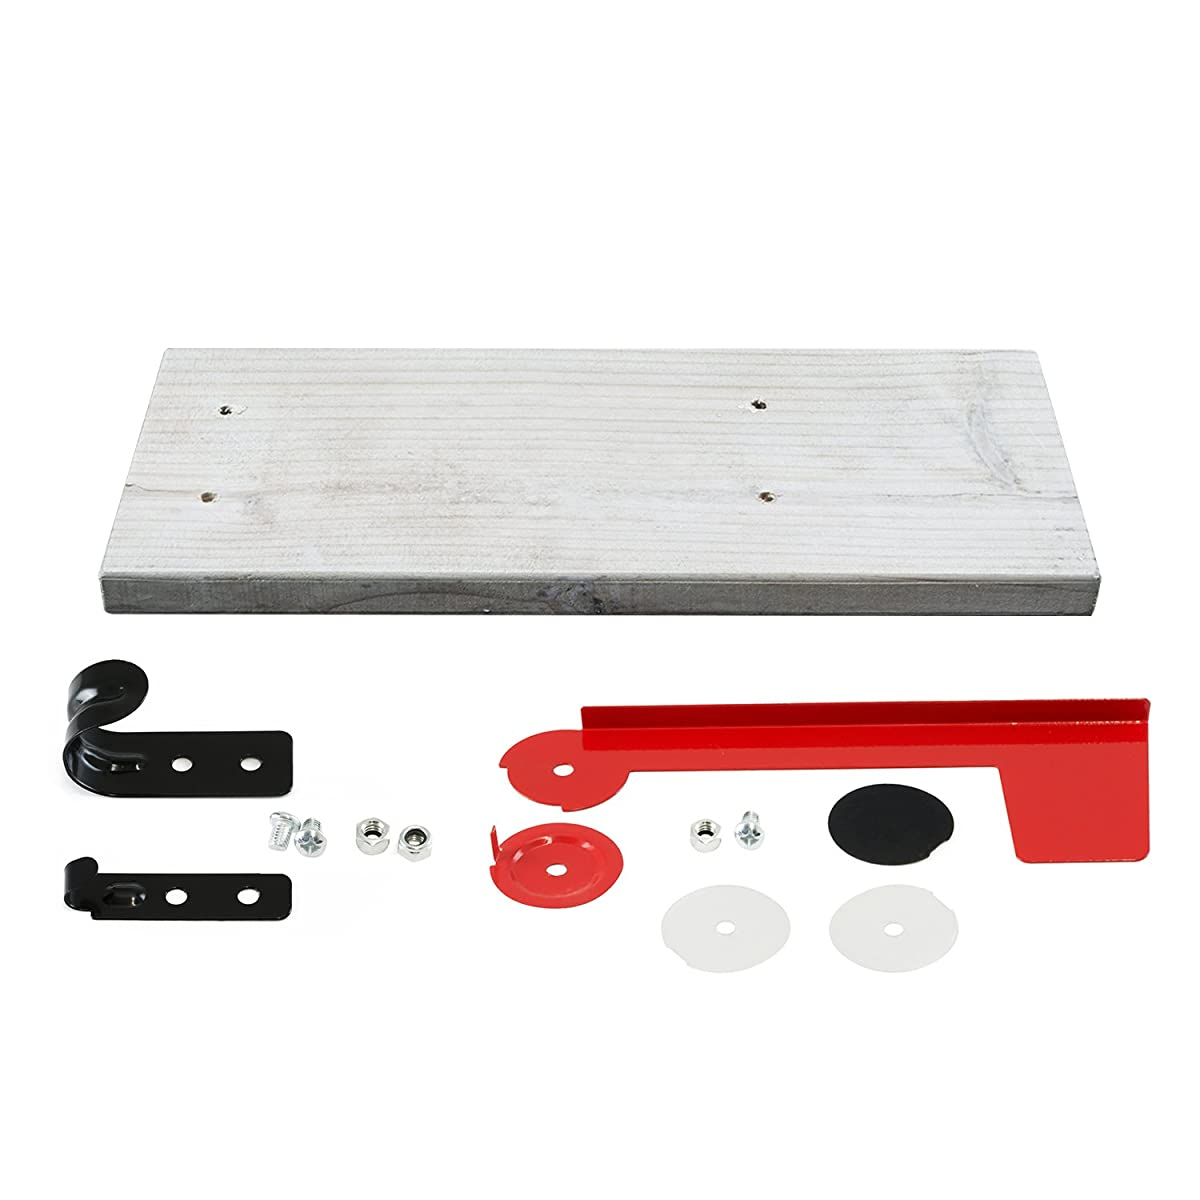 """Houseables Mailbox Post Kit System, Mail Box Included, Combo White & Black, 72"""" x 4"""", Vinyl PVC Plastic Post & Mounting Arm, Aluminum Mailboxes, Steel Anchor, Rust Proof, For Home, Residence, Curbside"""